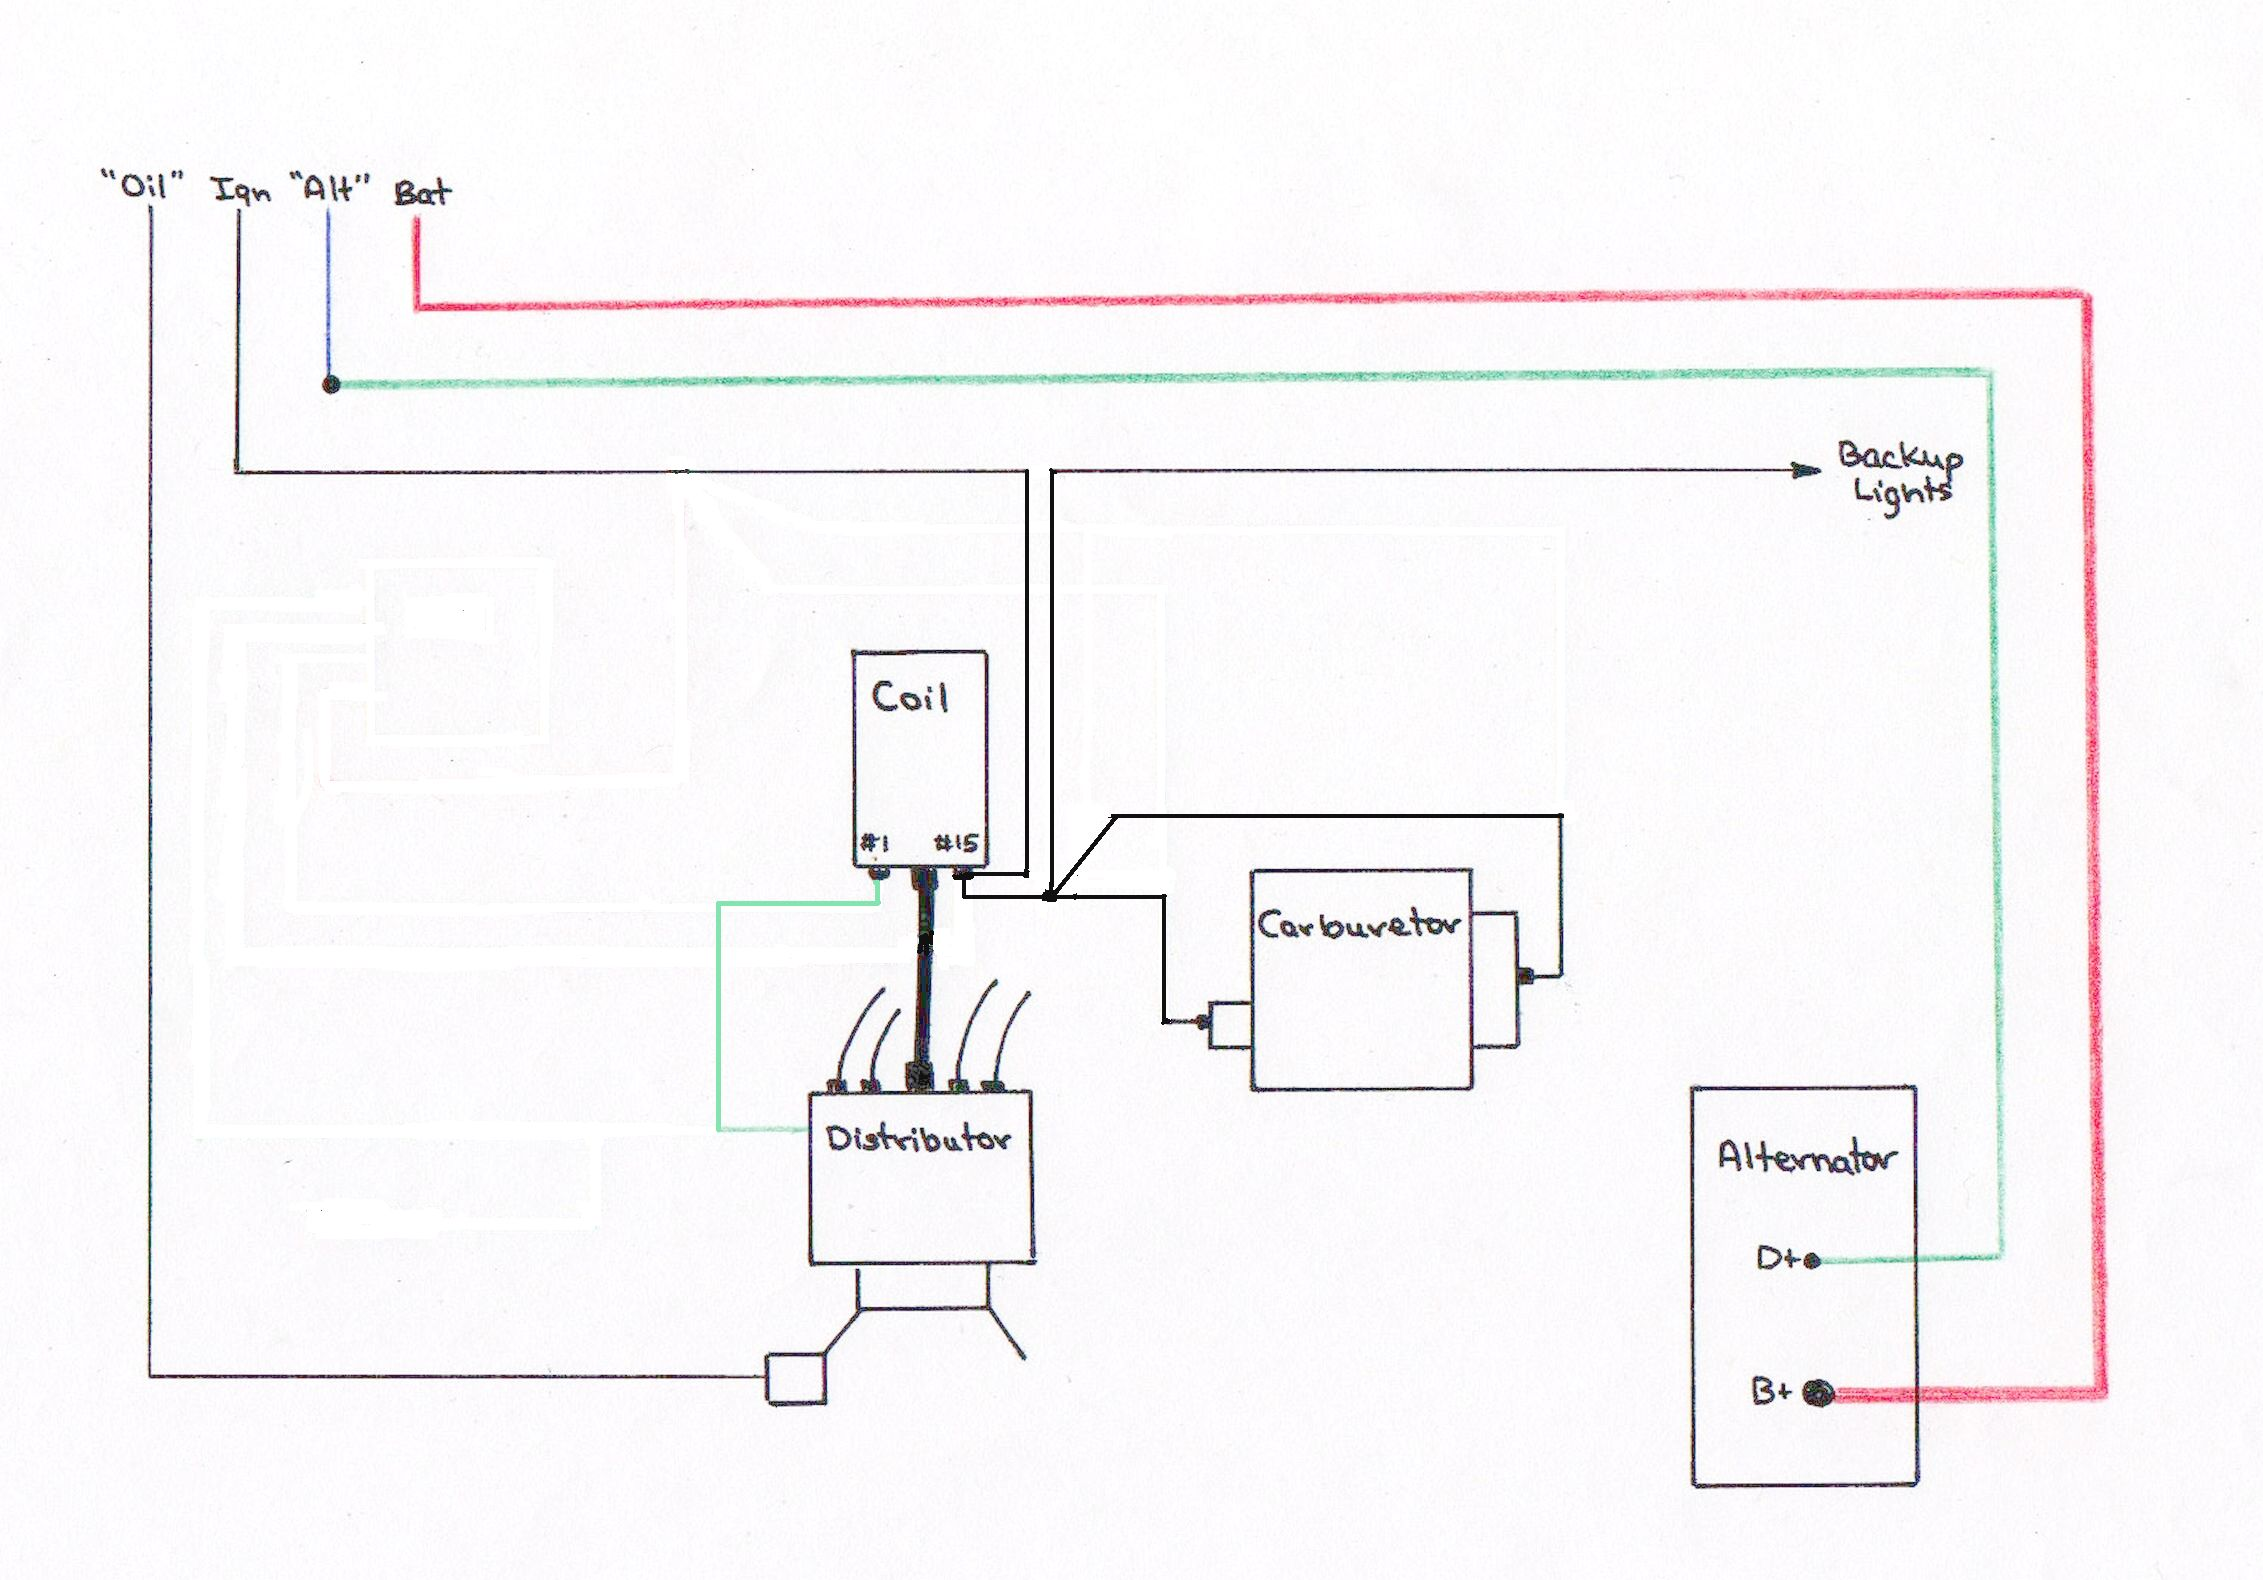 handdrawn_schematic alternator wiring valeo alternator regulator wiring diagram at mifinder.co